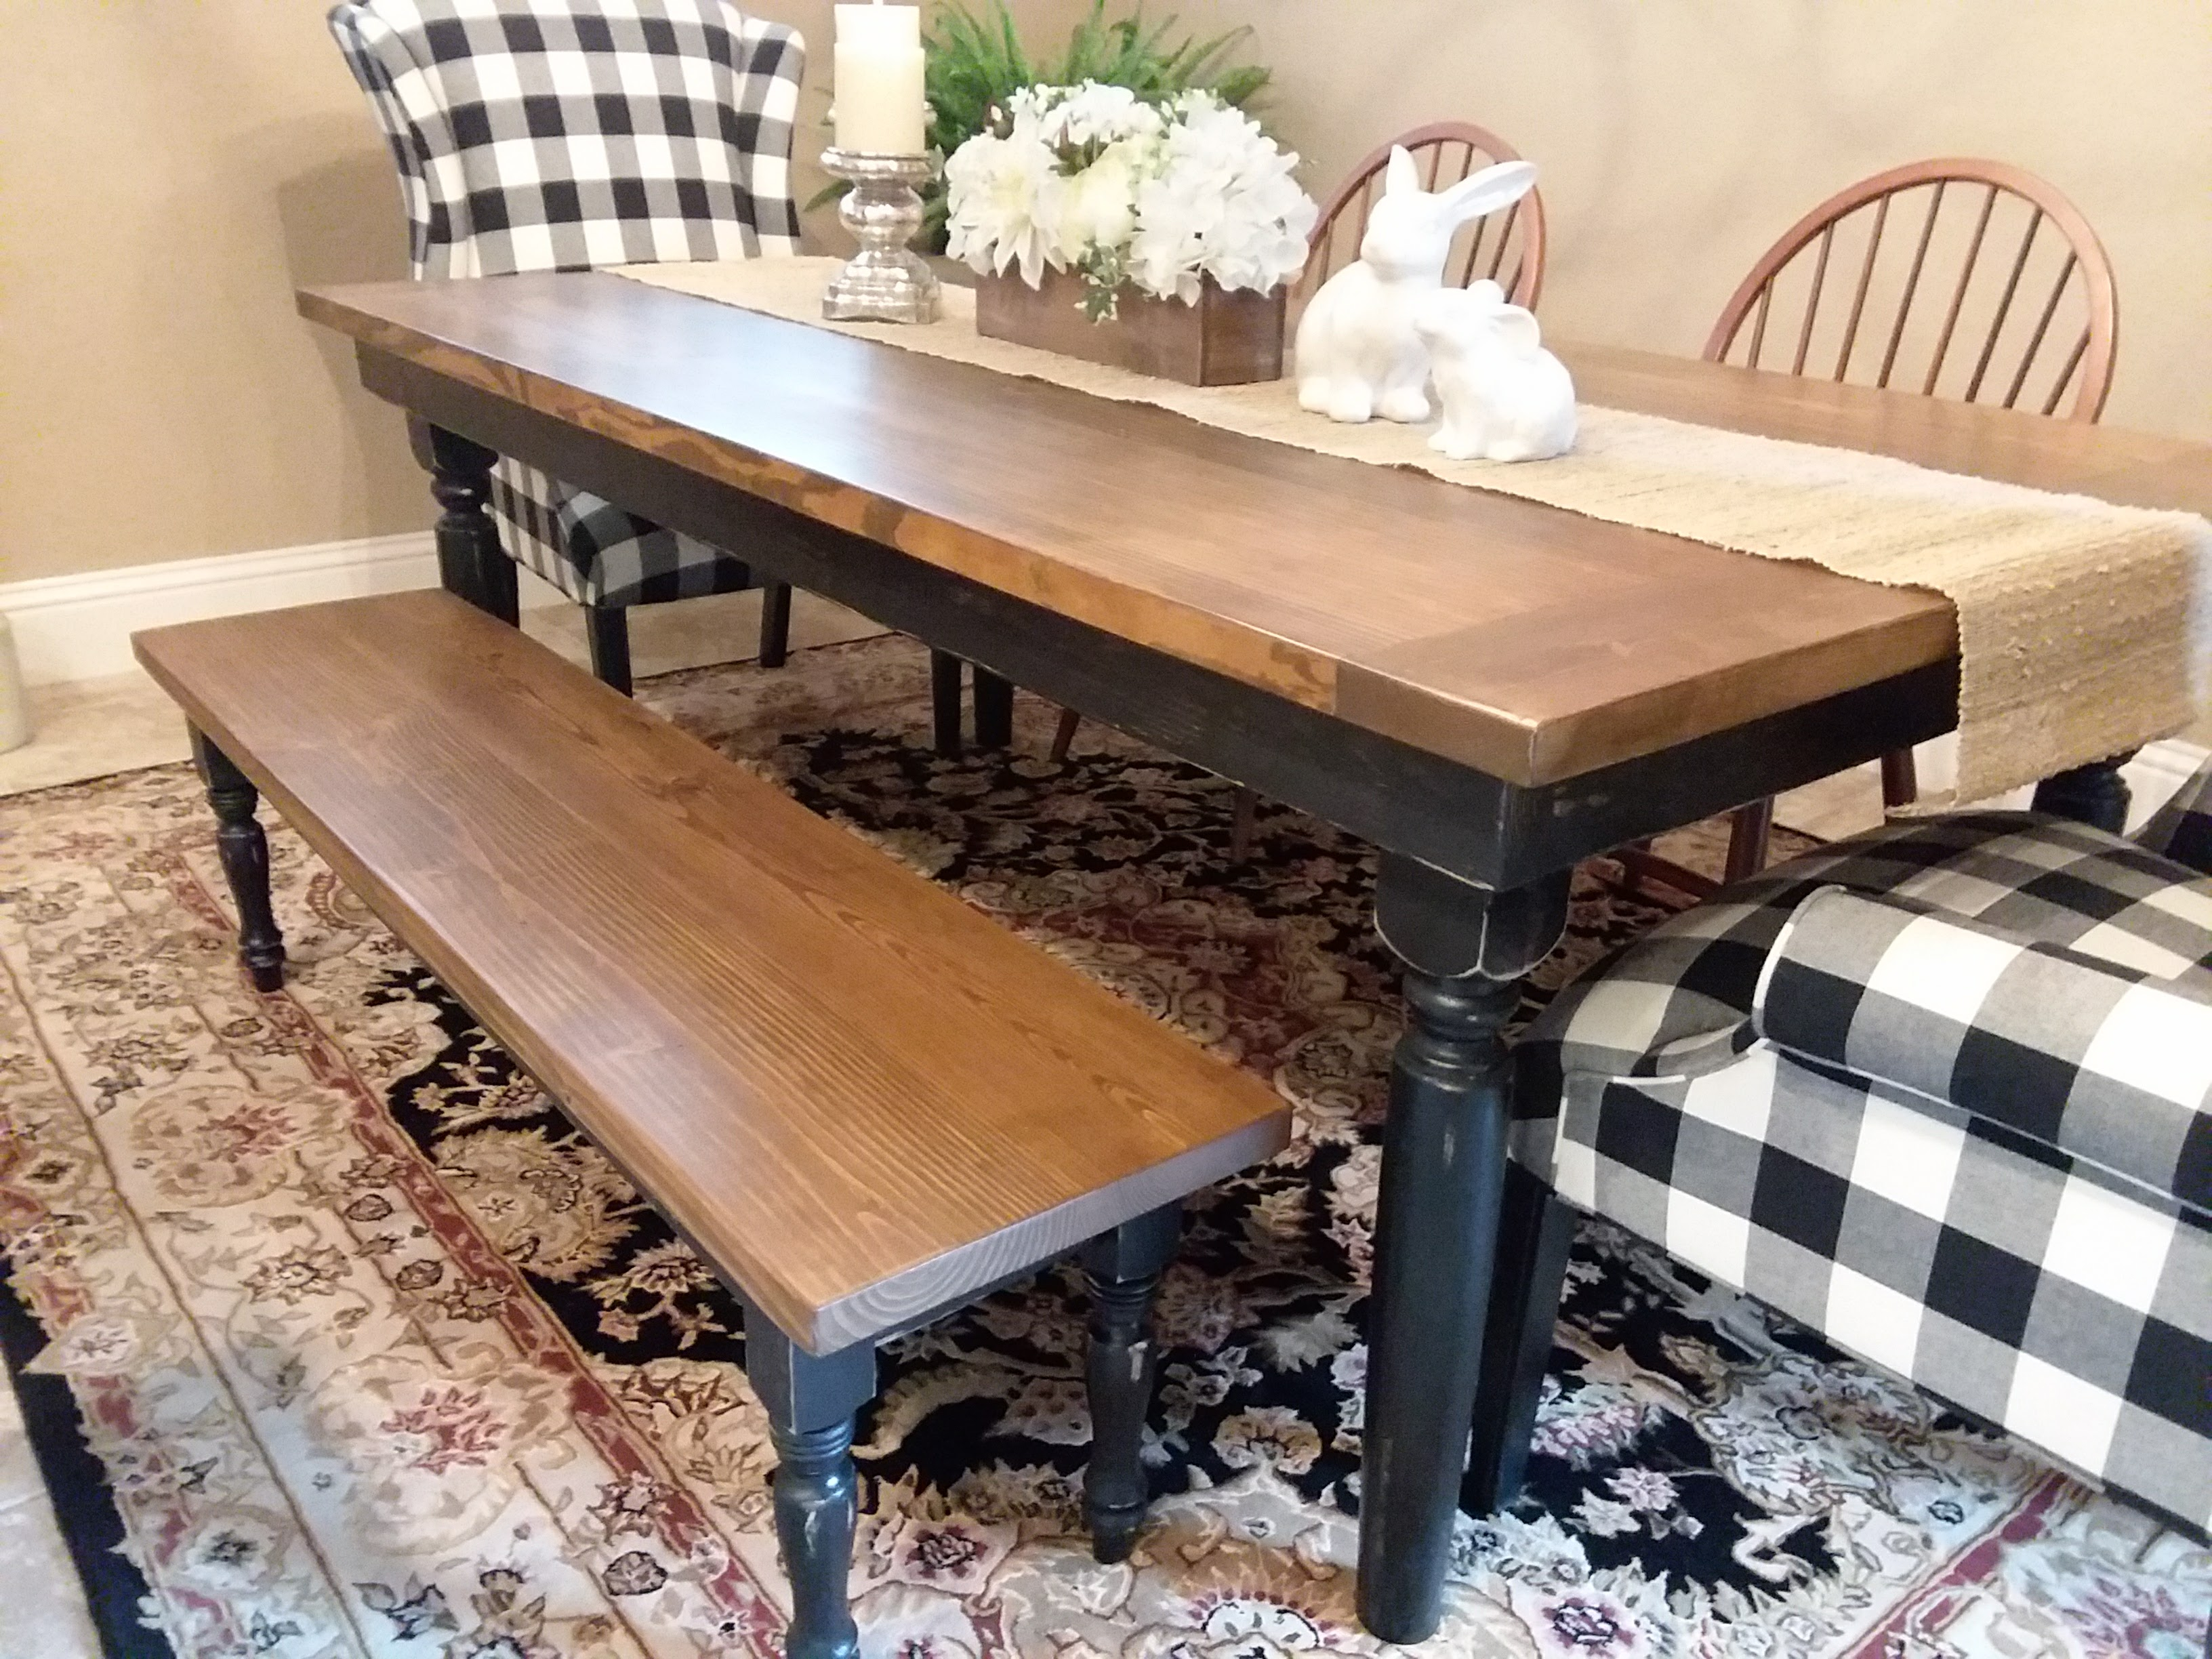 View Our Gallery - Lots Of Rustic Farm Tables